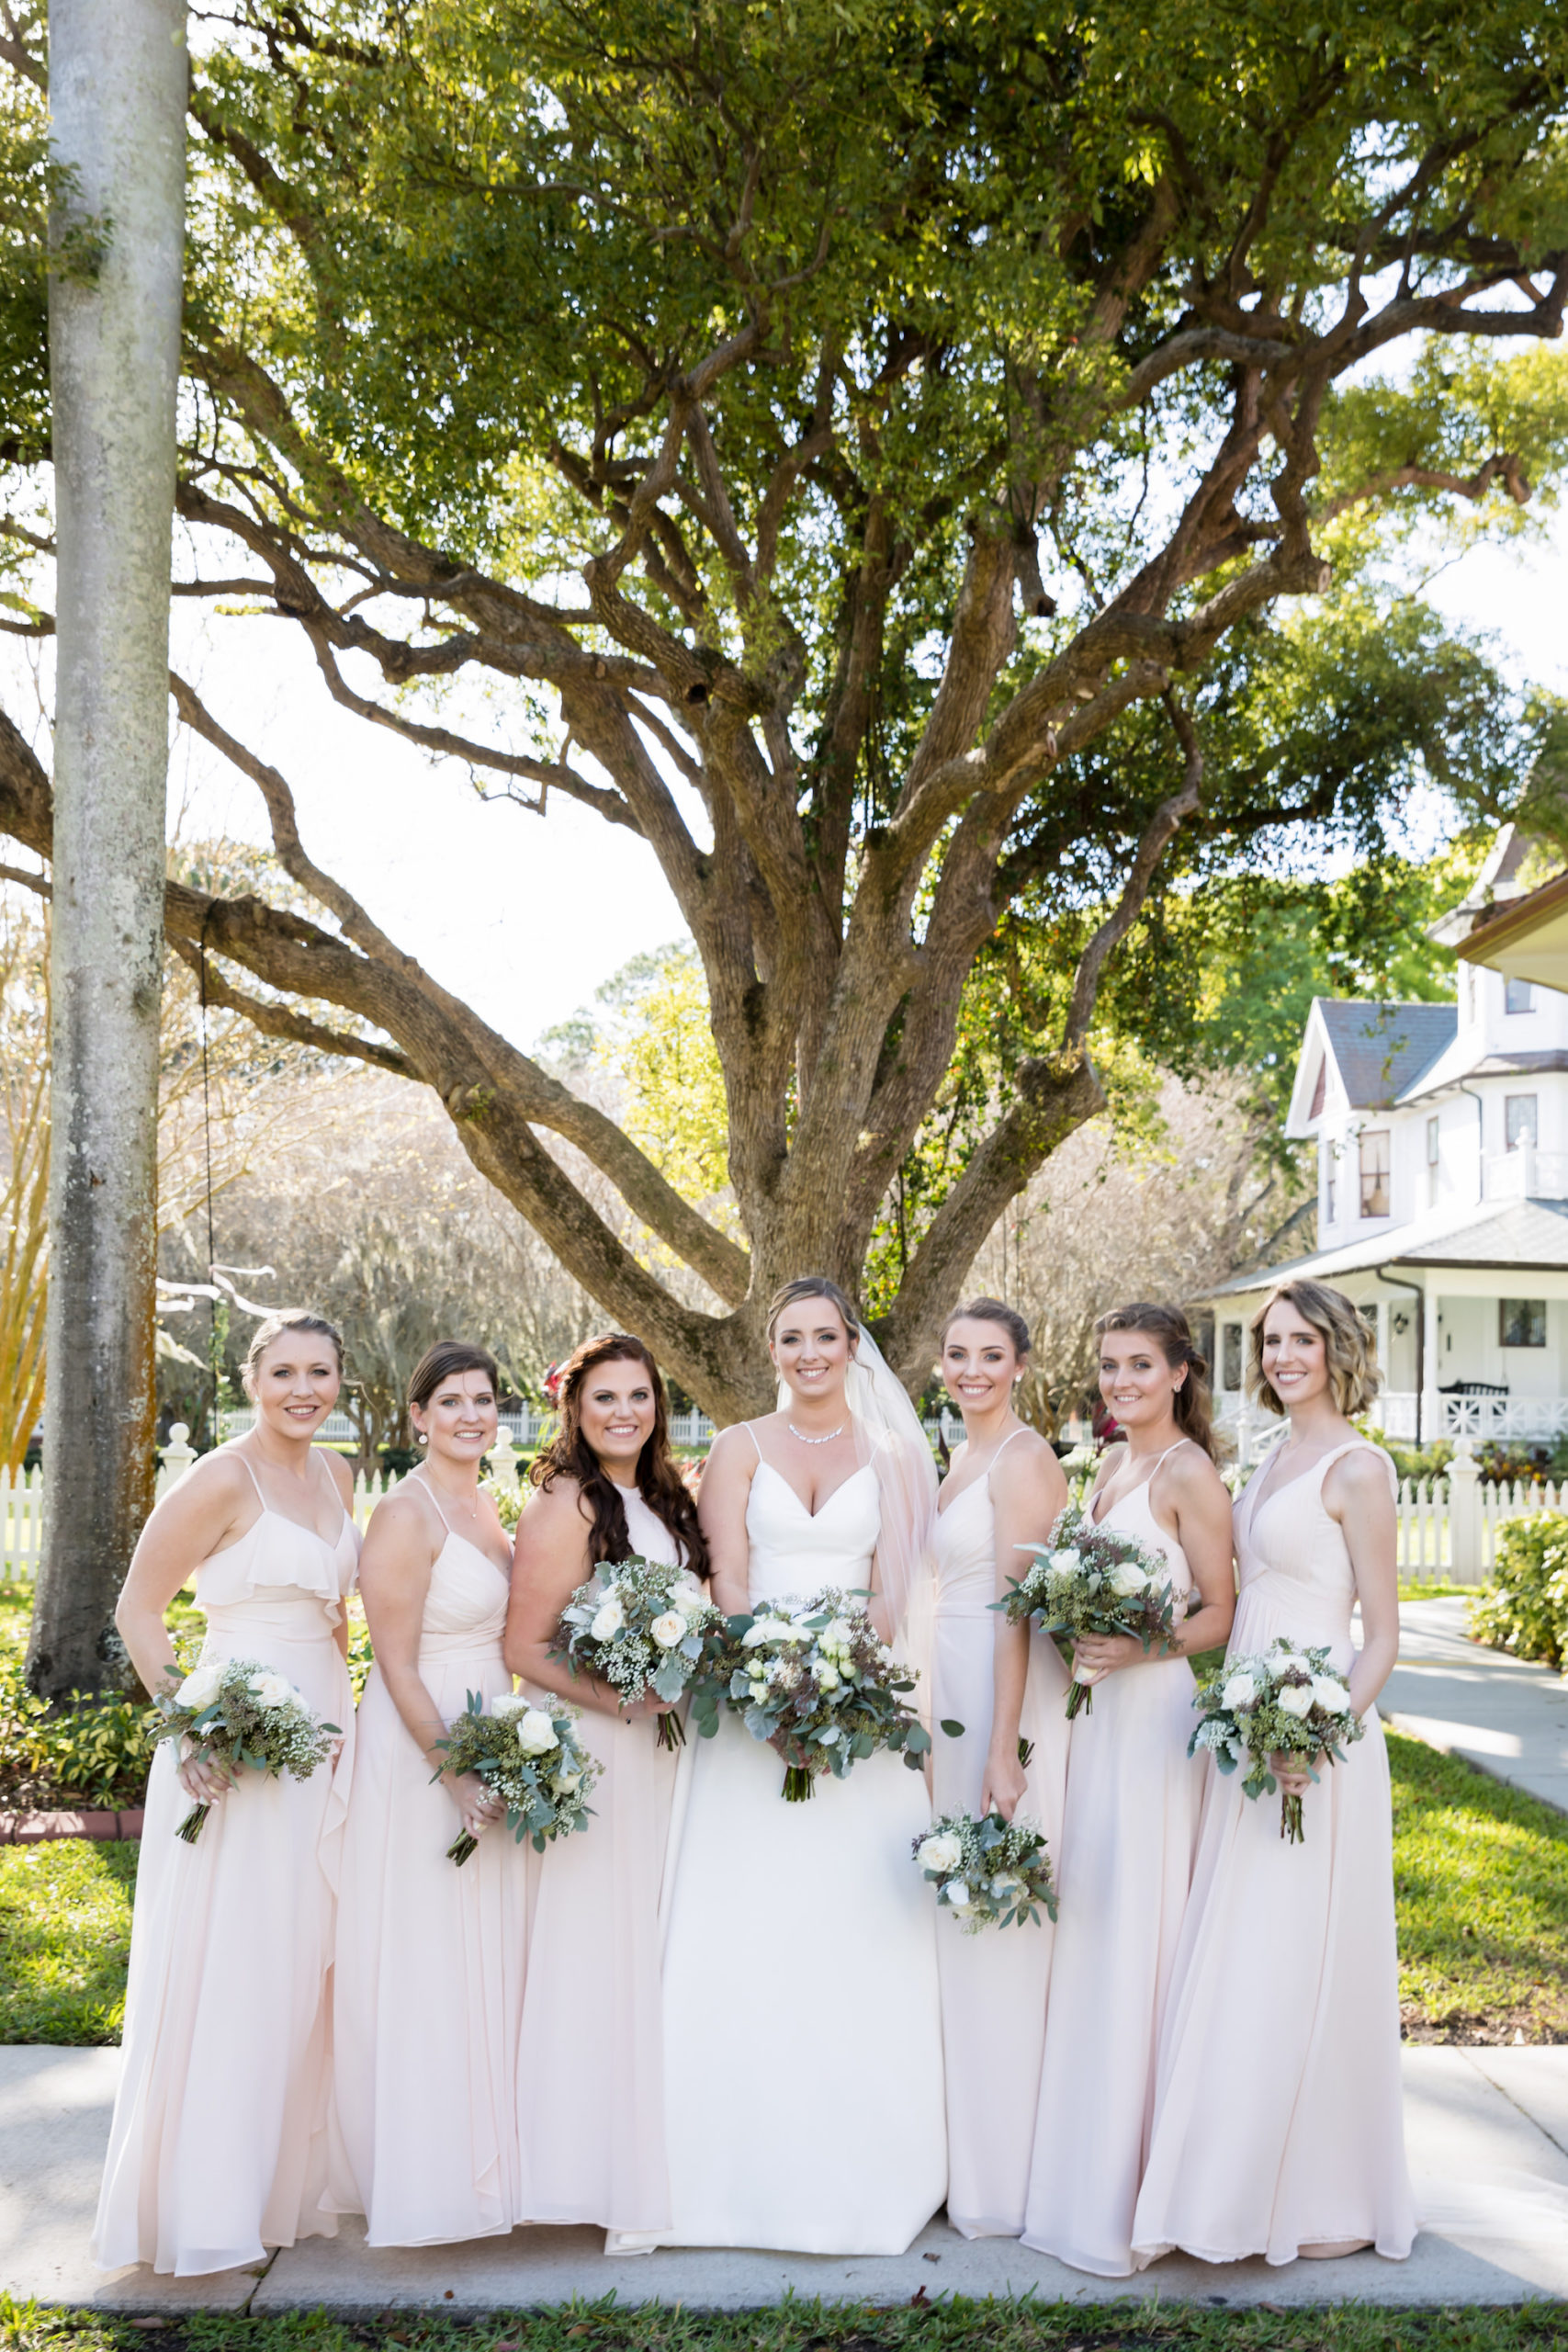 Tampa Bay Bridal Party, Bridesmaids in Mix and Match Blush Pink Dresses, Bride in Justin Alexander V Neck A-Line Wedding Dress Holding Organic Greenery and Ivory Floral Bouquets   Wedding Planner Coastal Coordinating